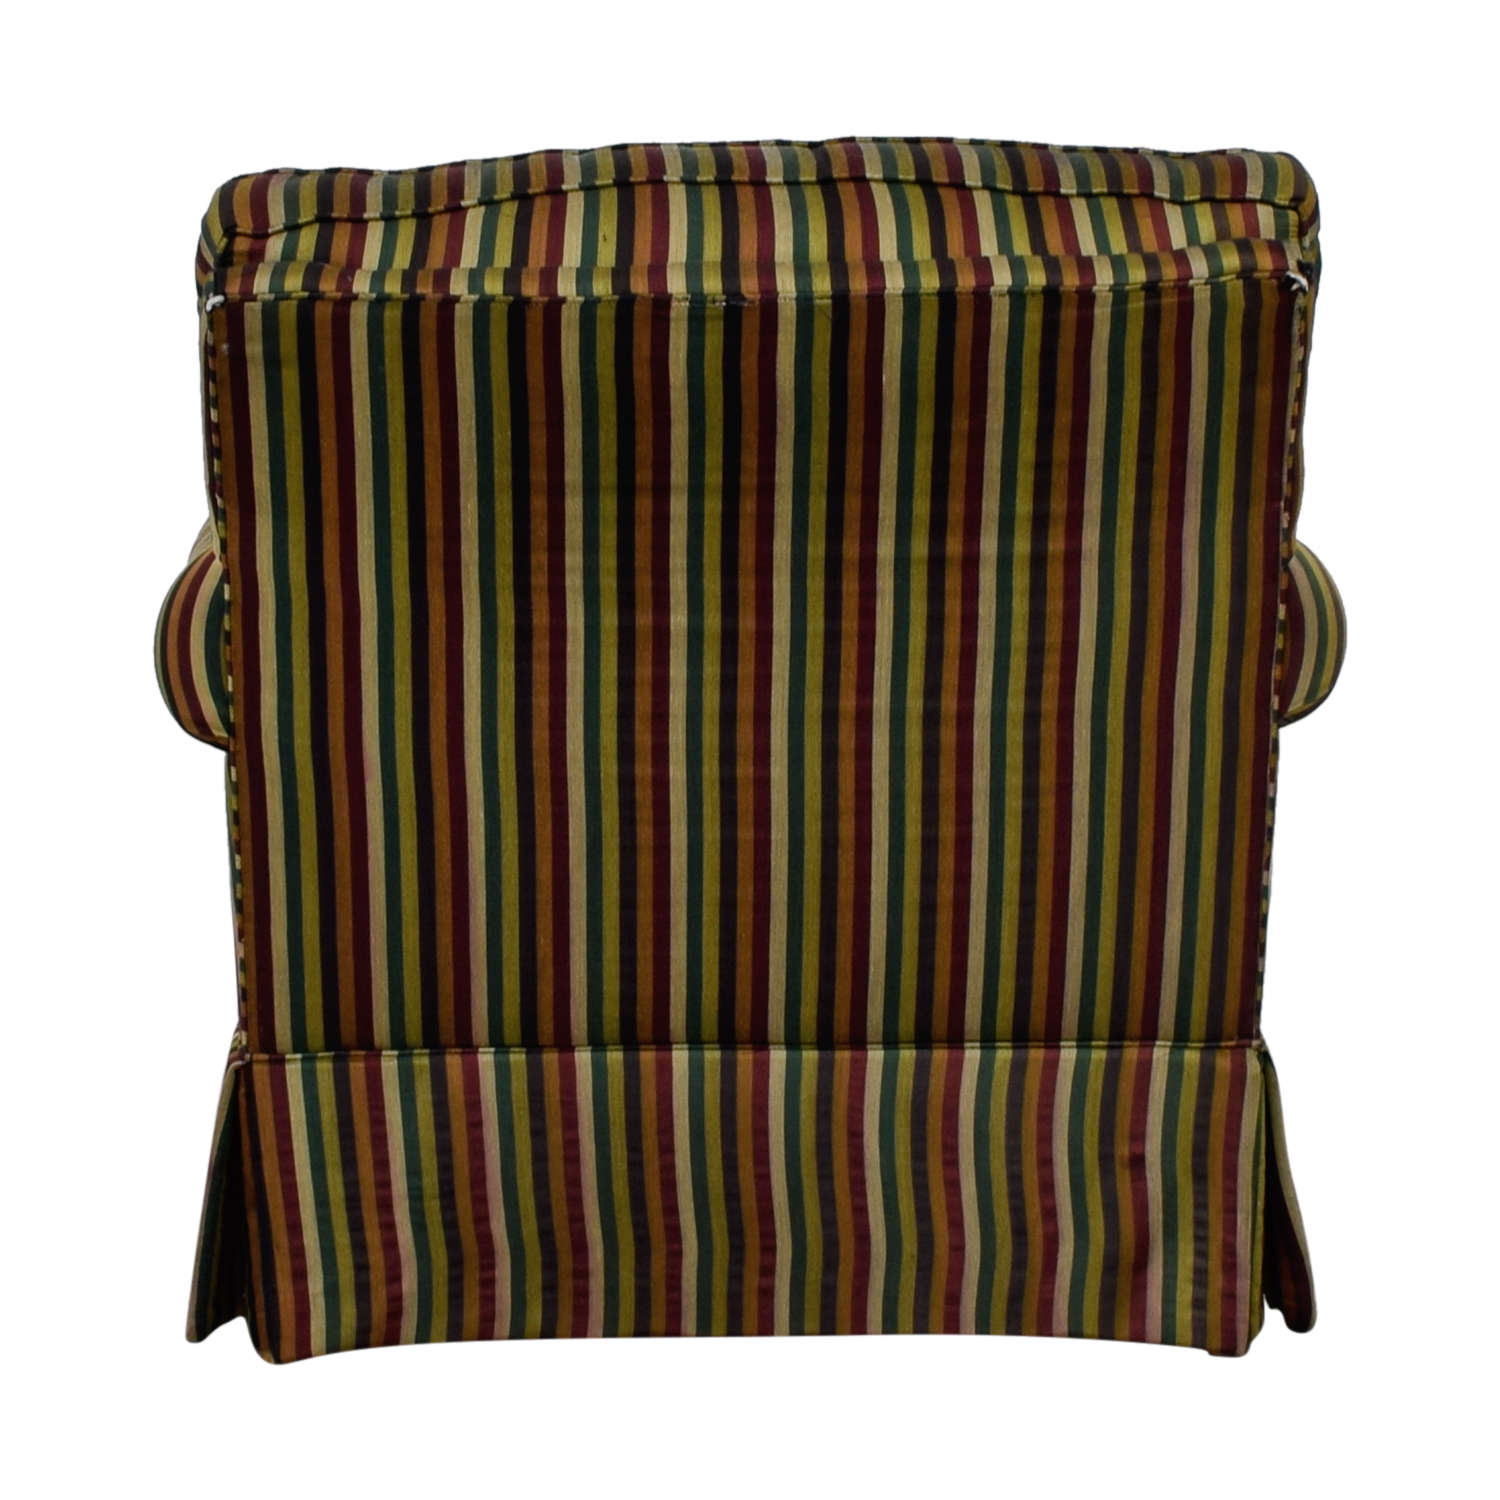 The Lane Company The Lane Company Pearson Stripe Chair